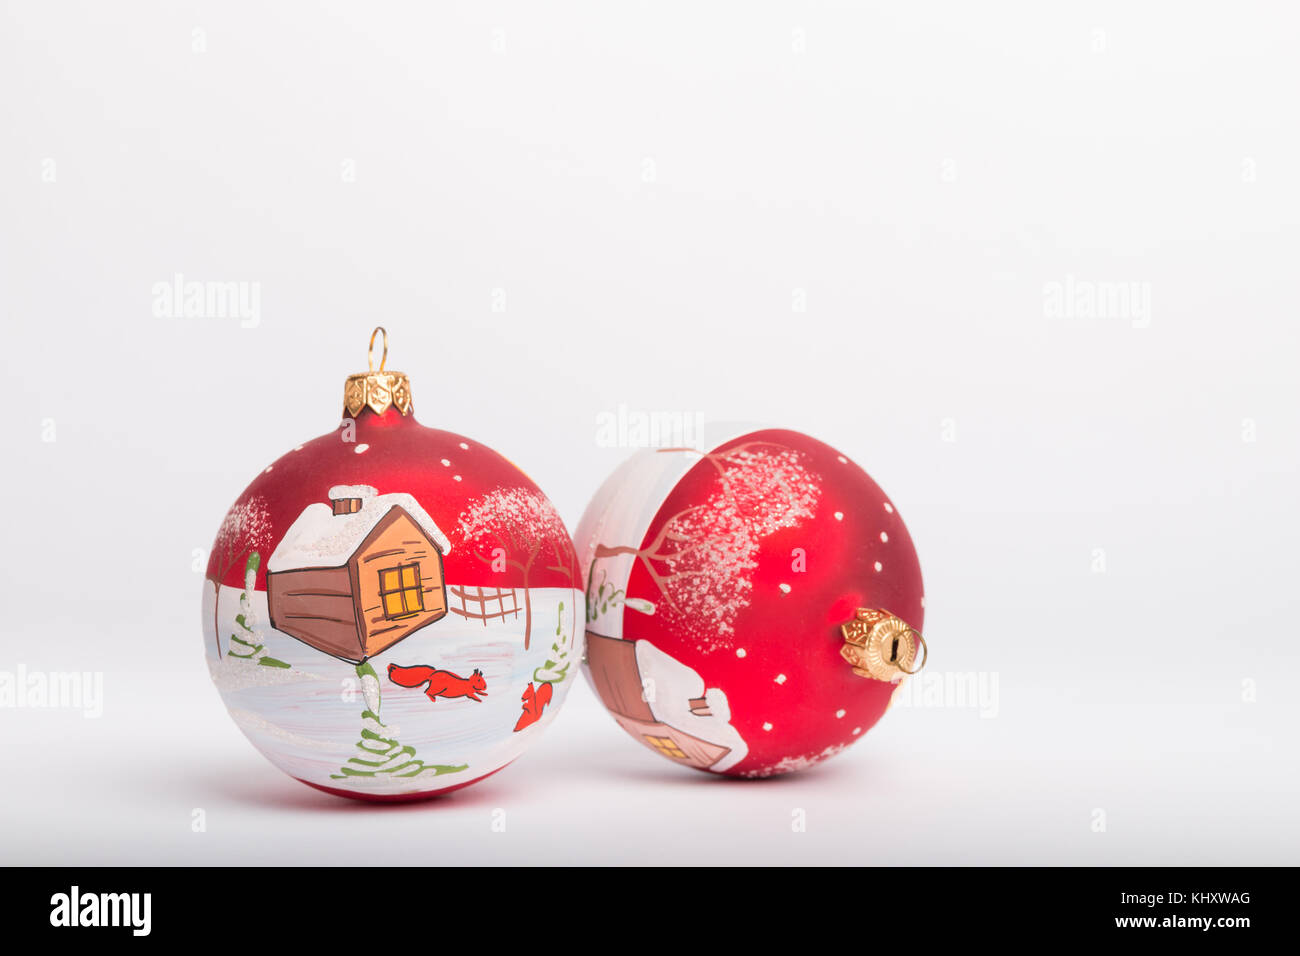 Hand Painted Ball Ornament